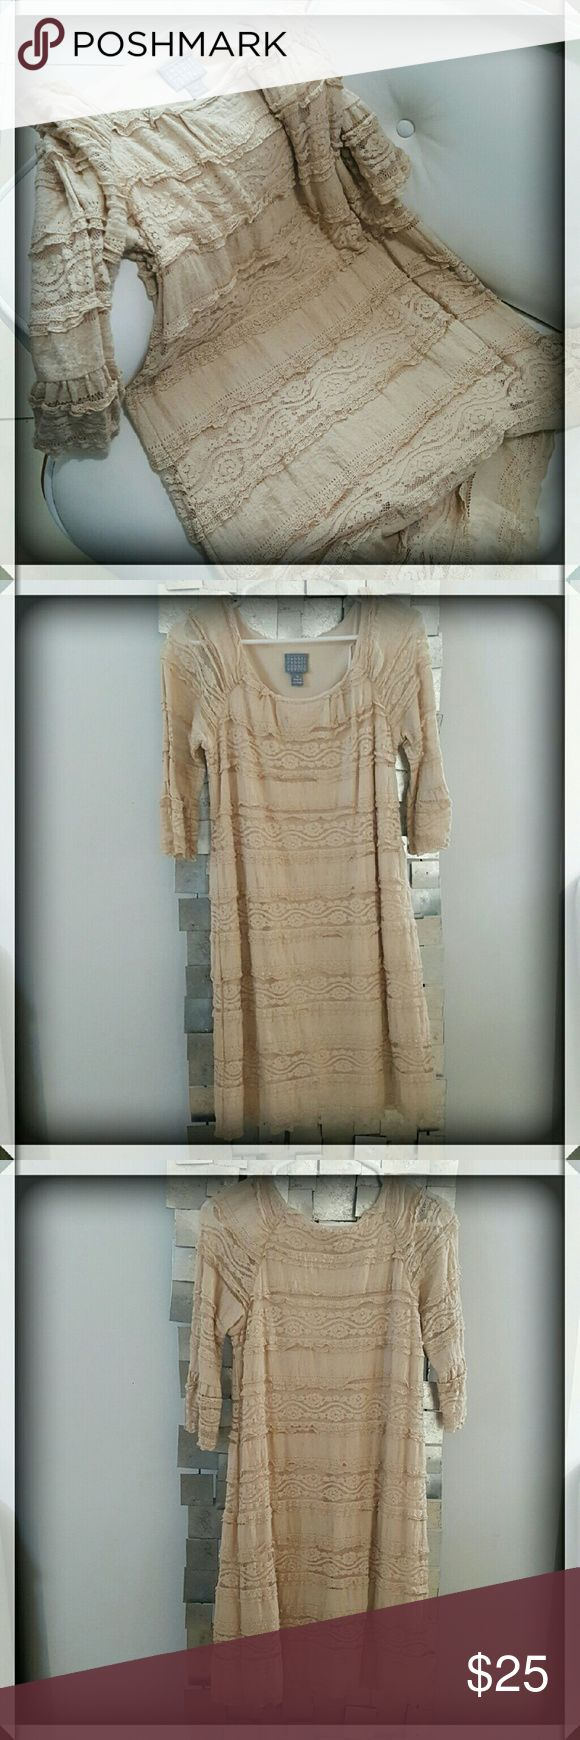 Beige Free People Style Dress by Rabbit Rabbit Beautiful beige dress by Rabbit Rabbit Petite. Very similar to Free People as far as style. So pretty with the floral lace details! Please ask any questions before purchase. Bundle to save. Rabbit Rabbit Dresses